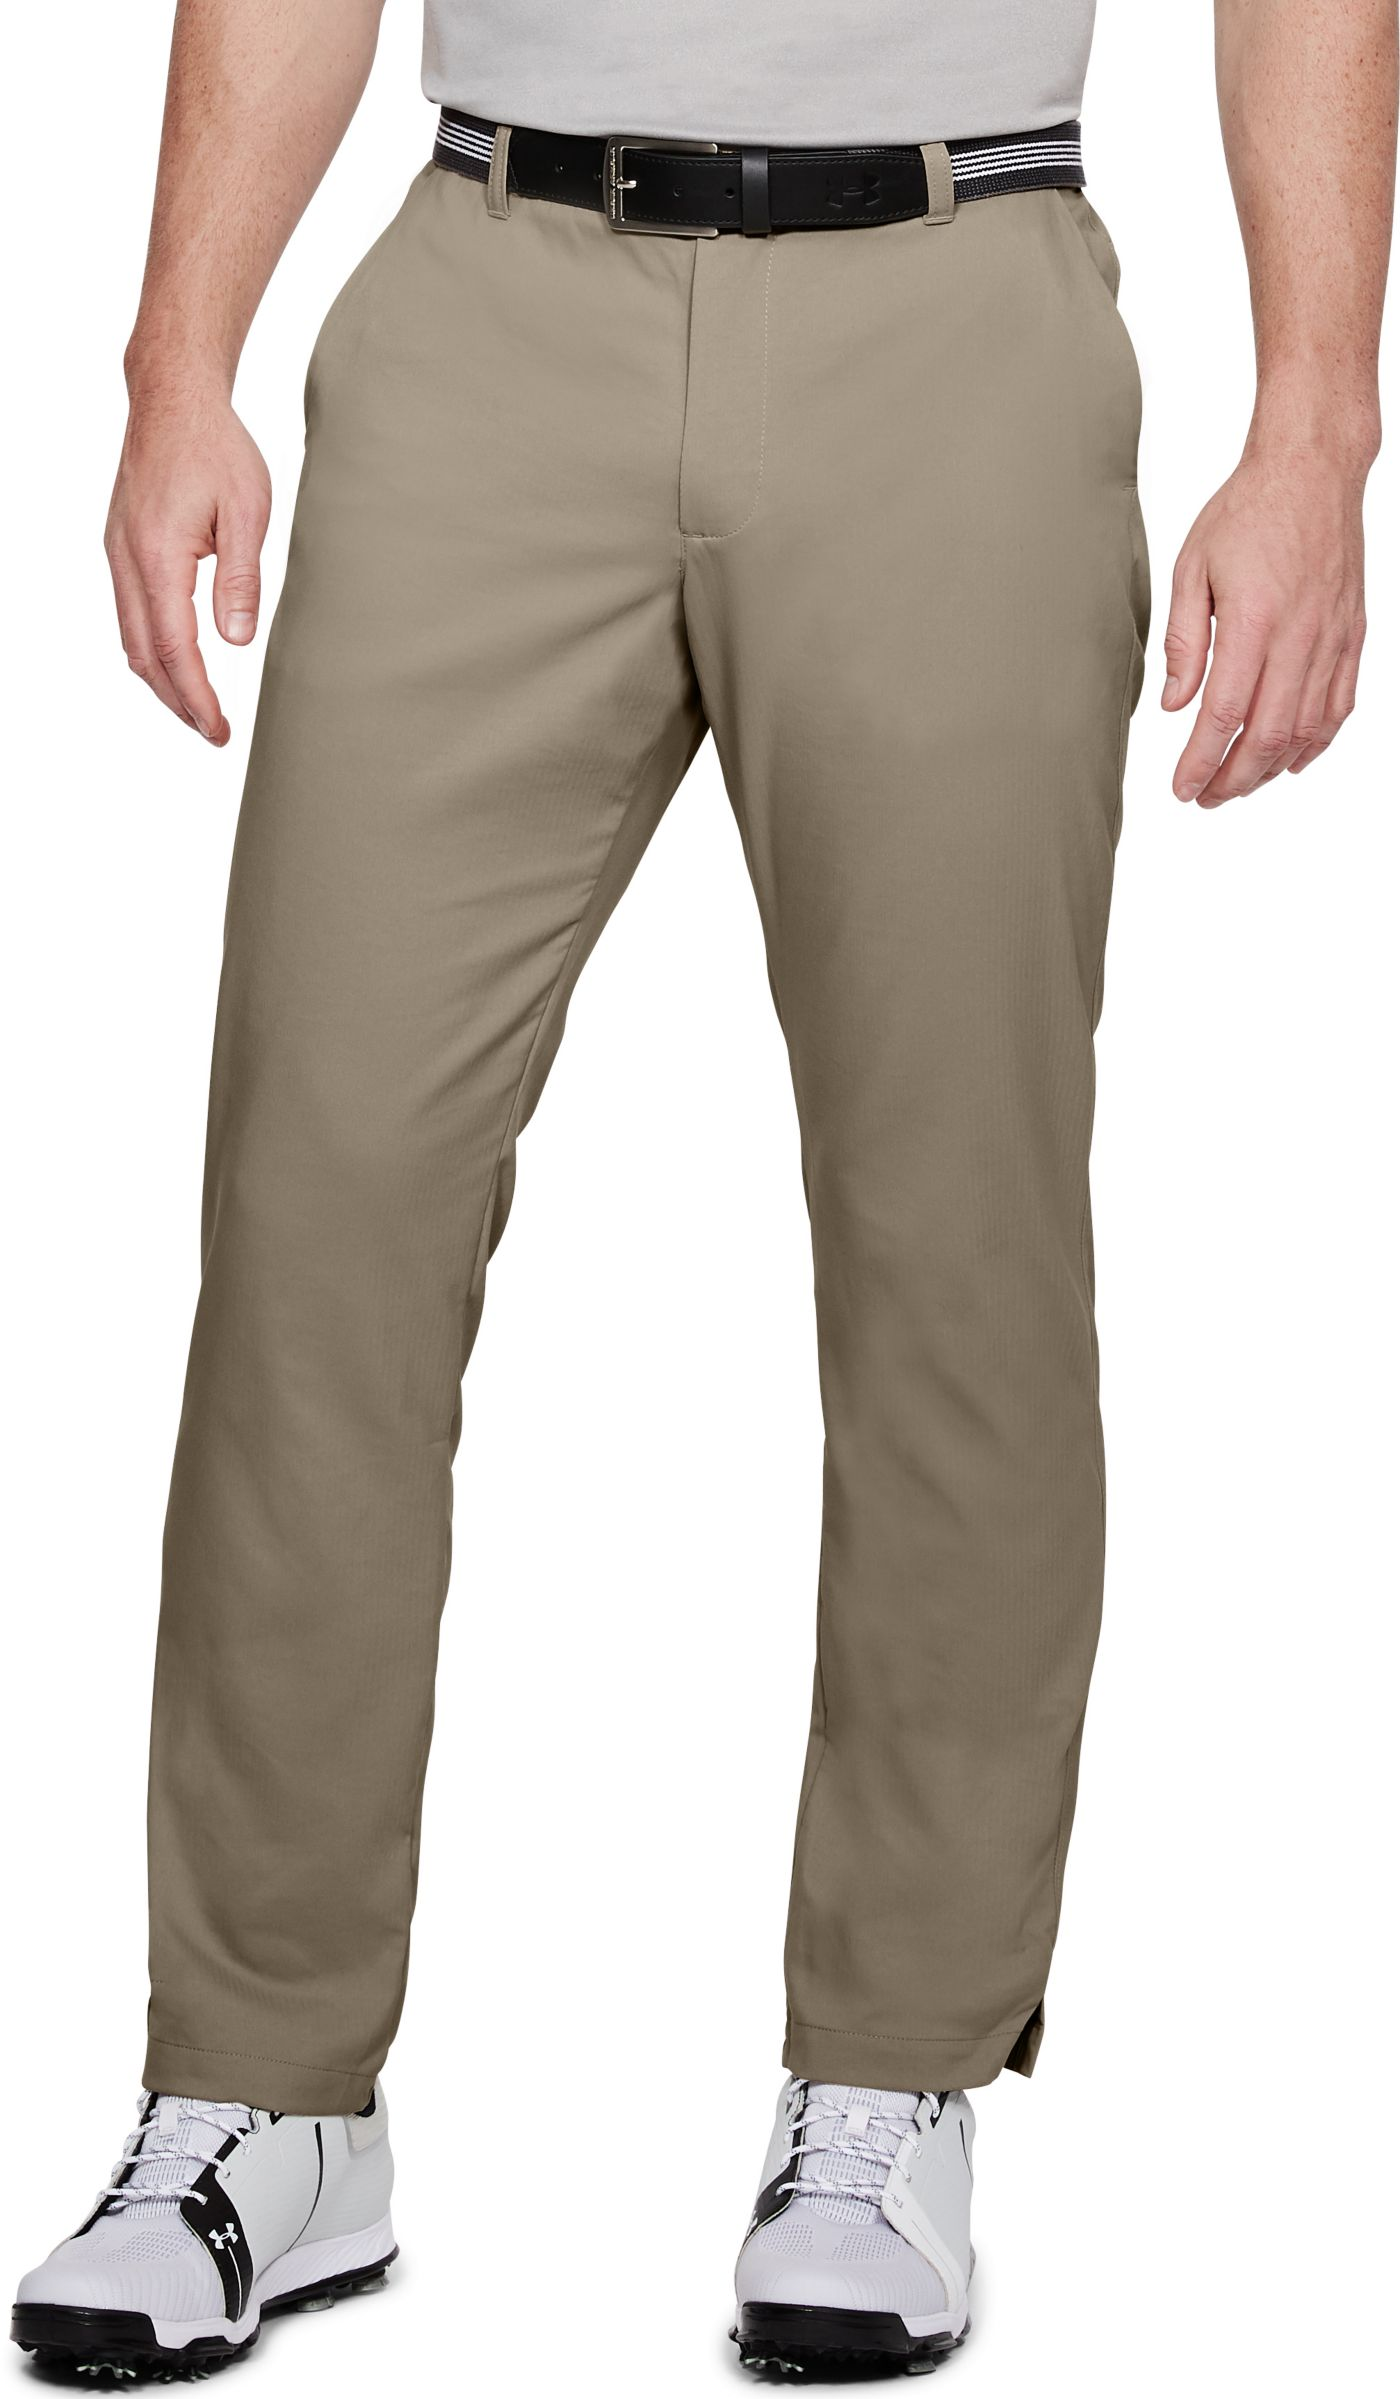 Under Armour Men's Showdown Straight Golf Pants